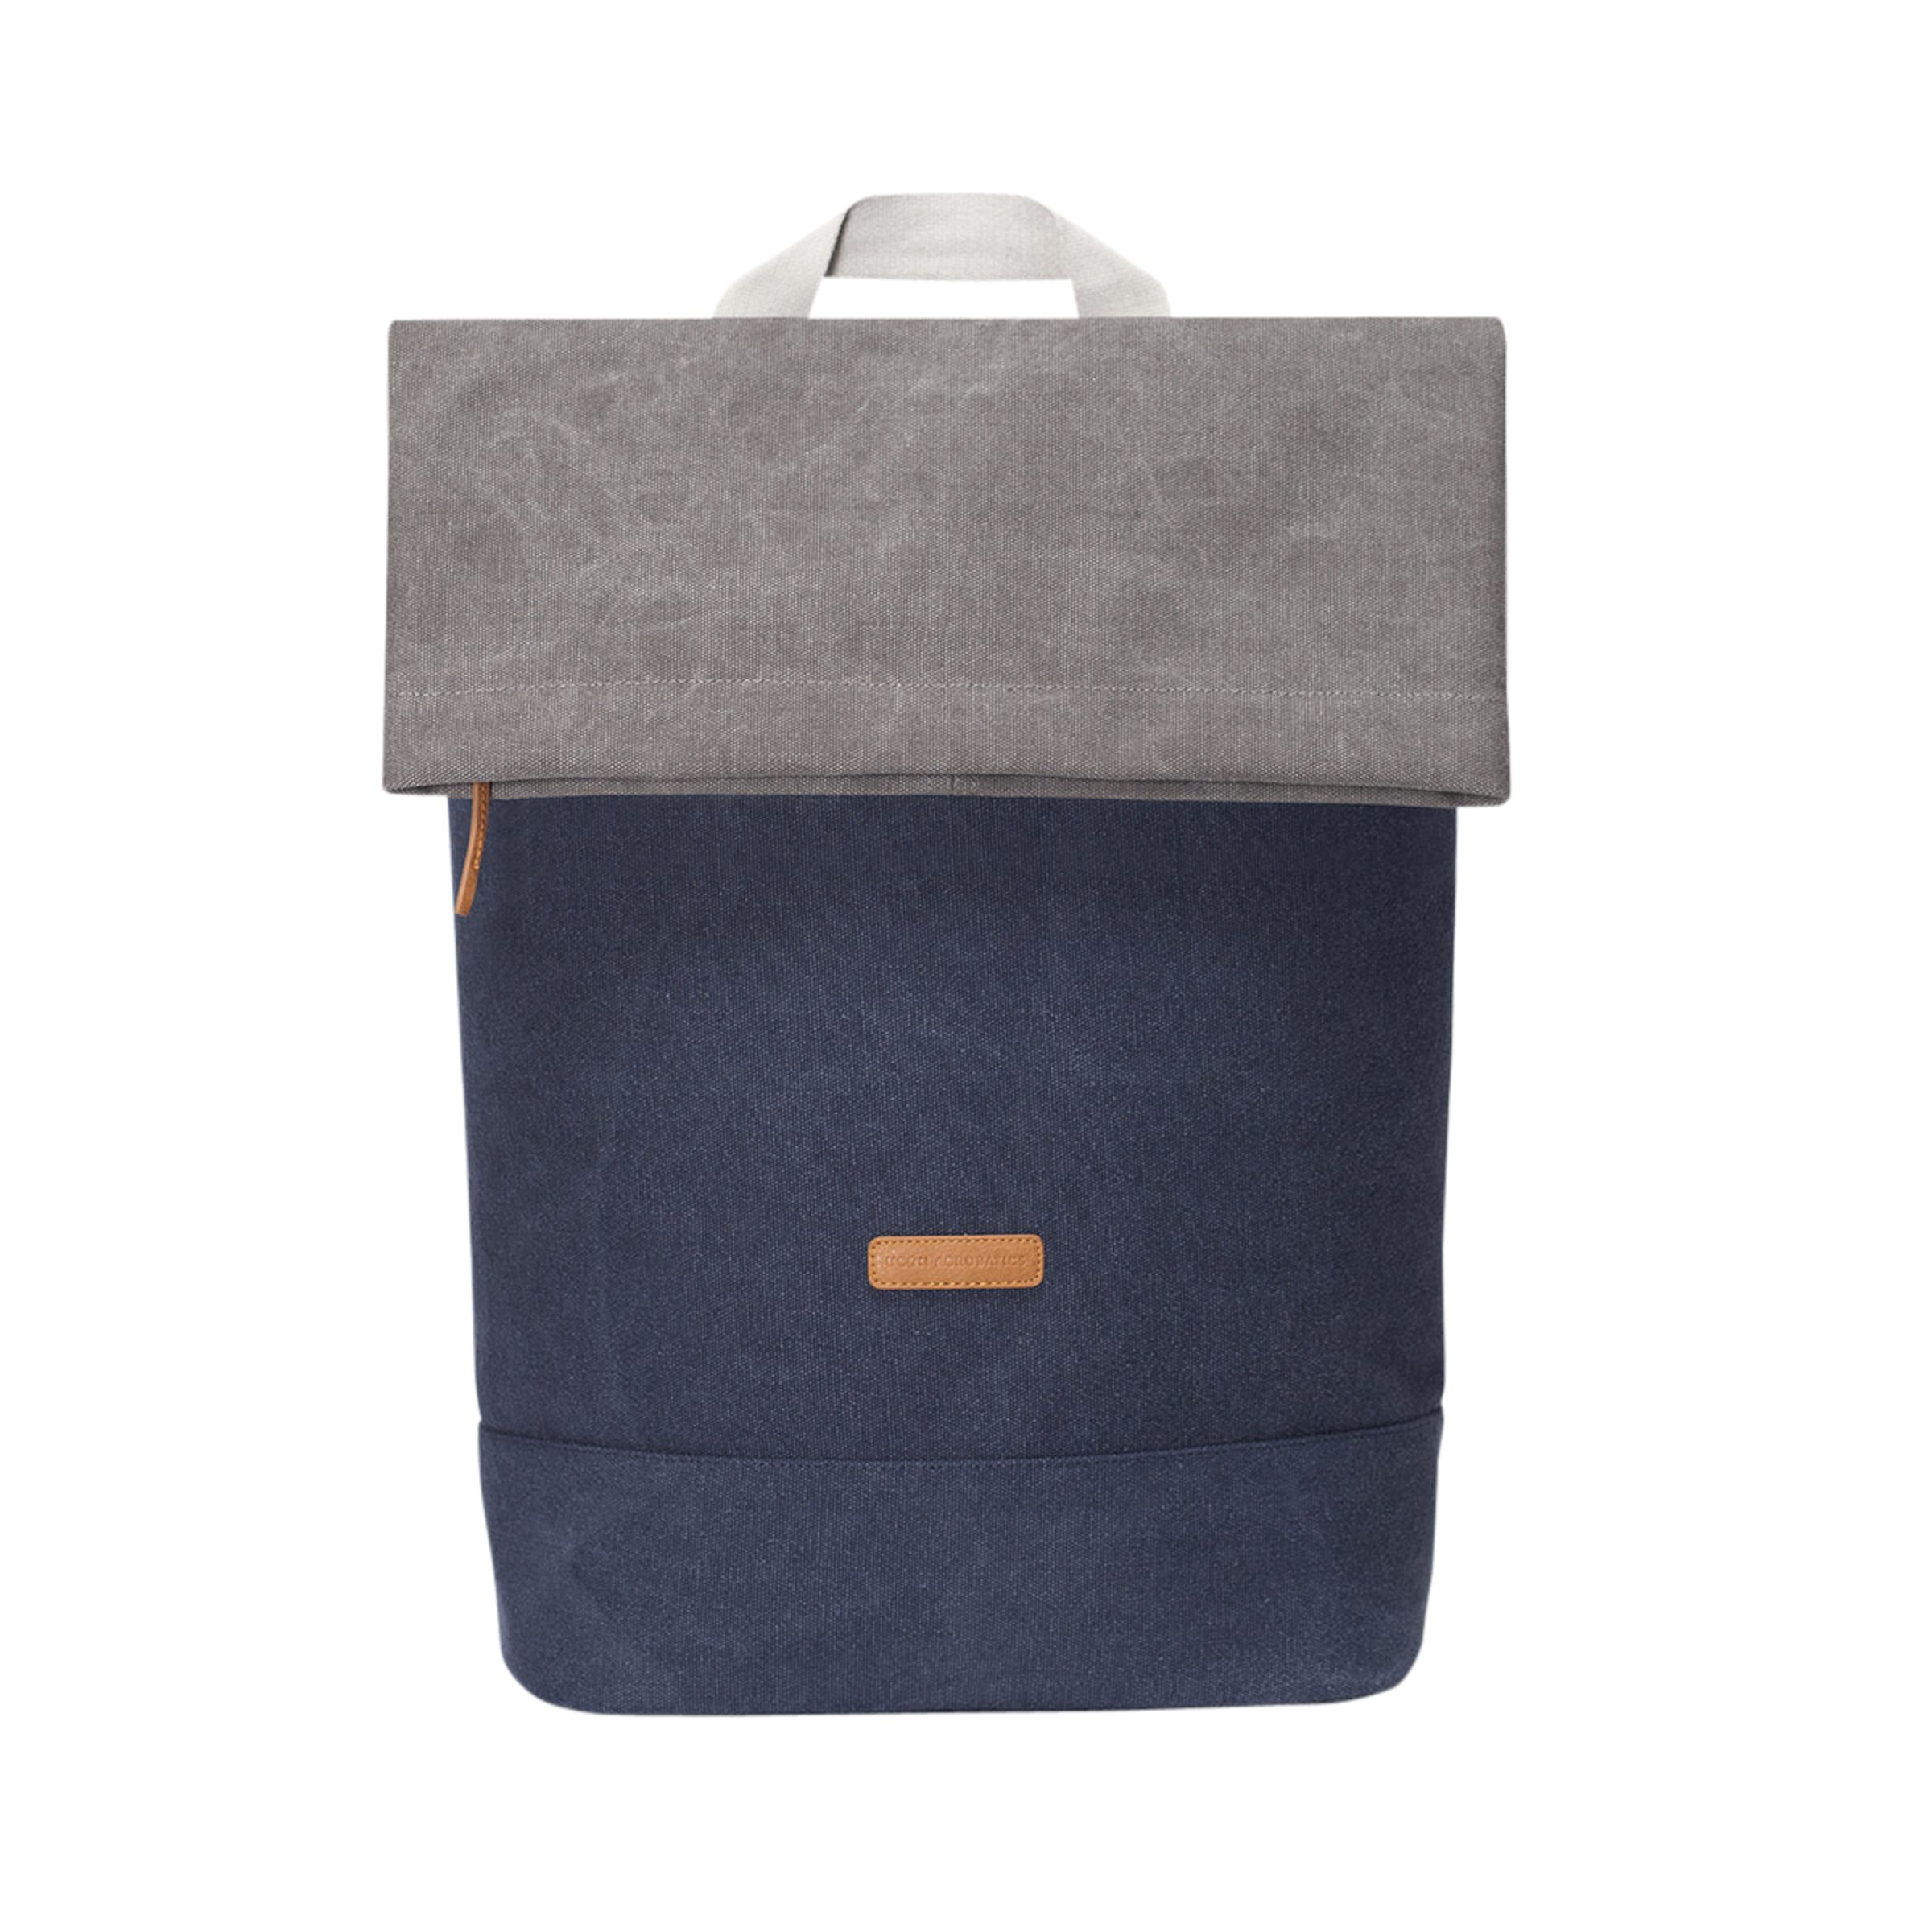 Backpack Navy In Rucksack 'karlo Original' Acrobatics Ucon NkXnZP80wO